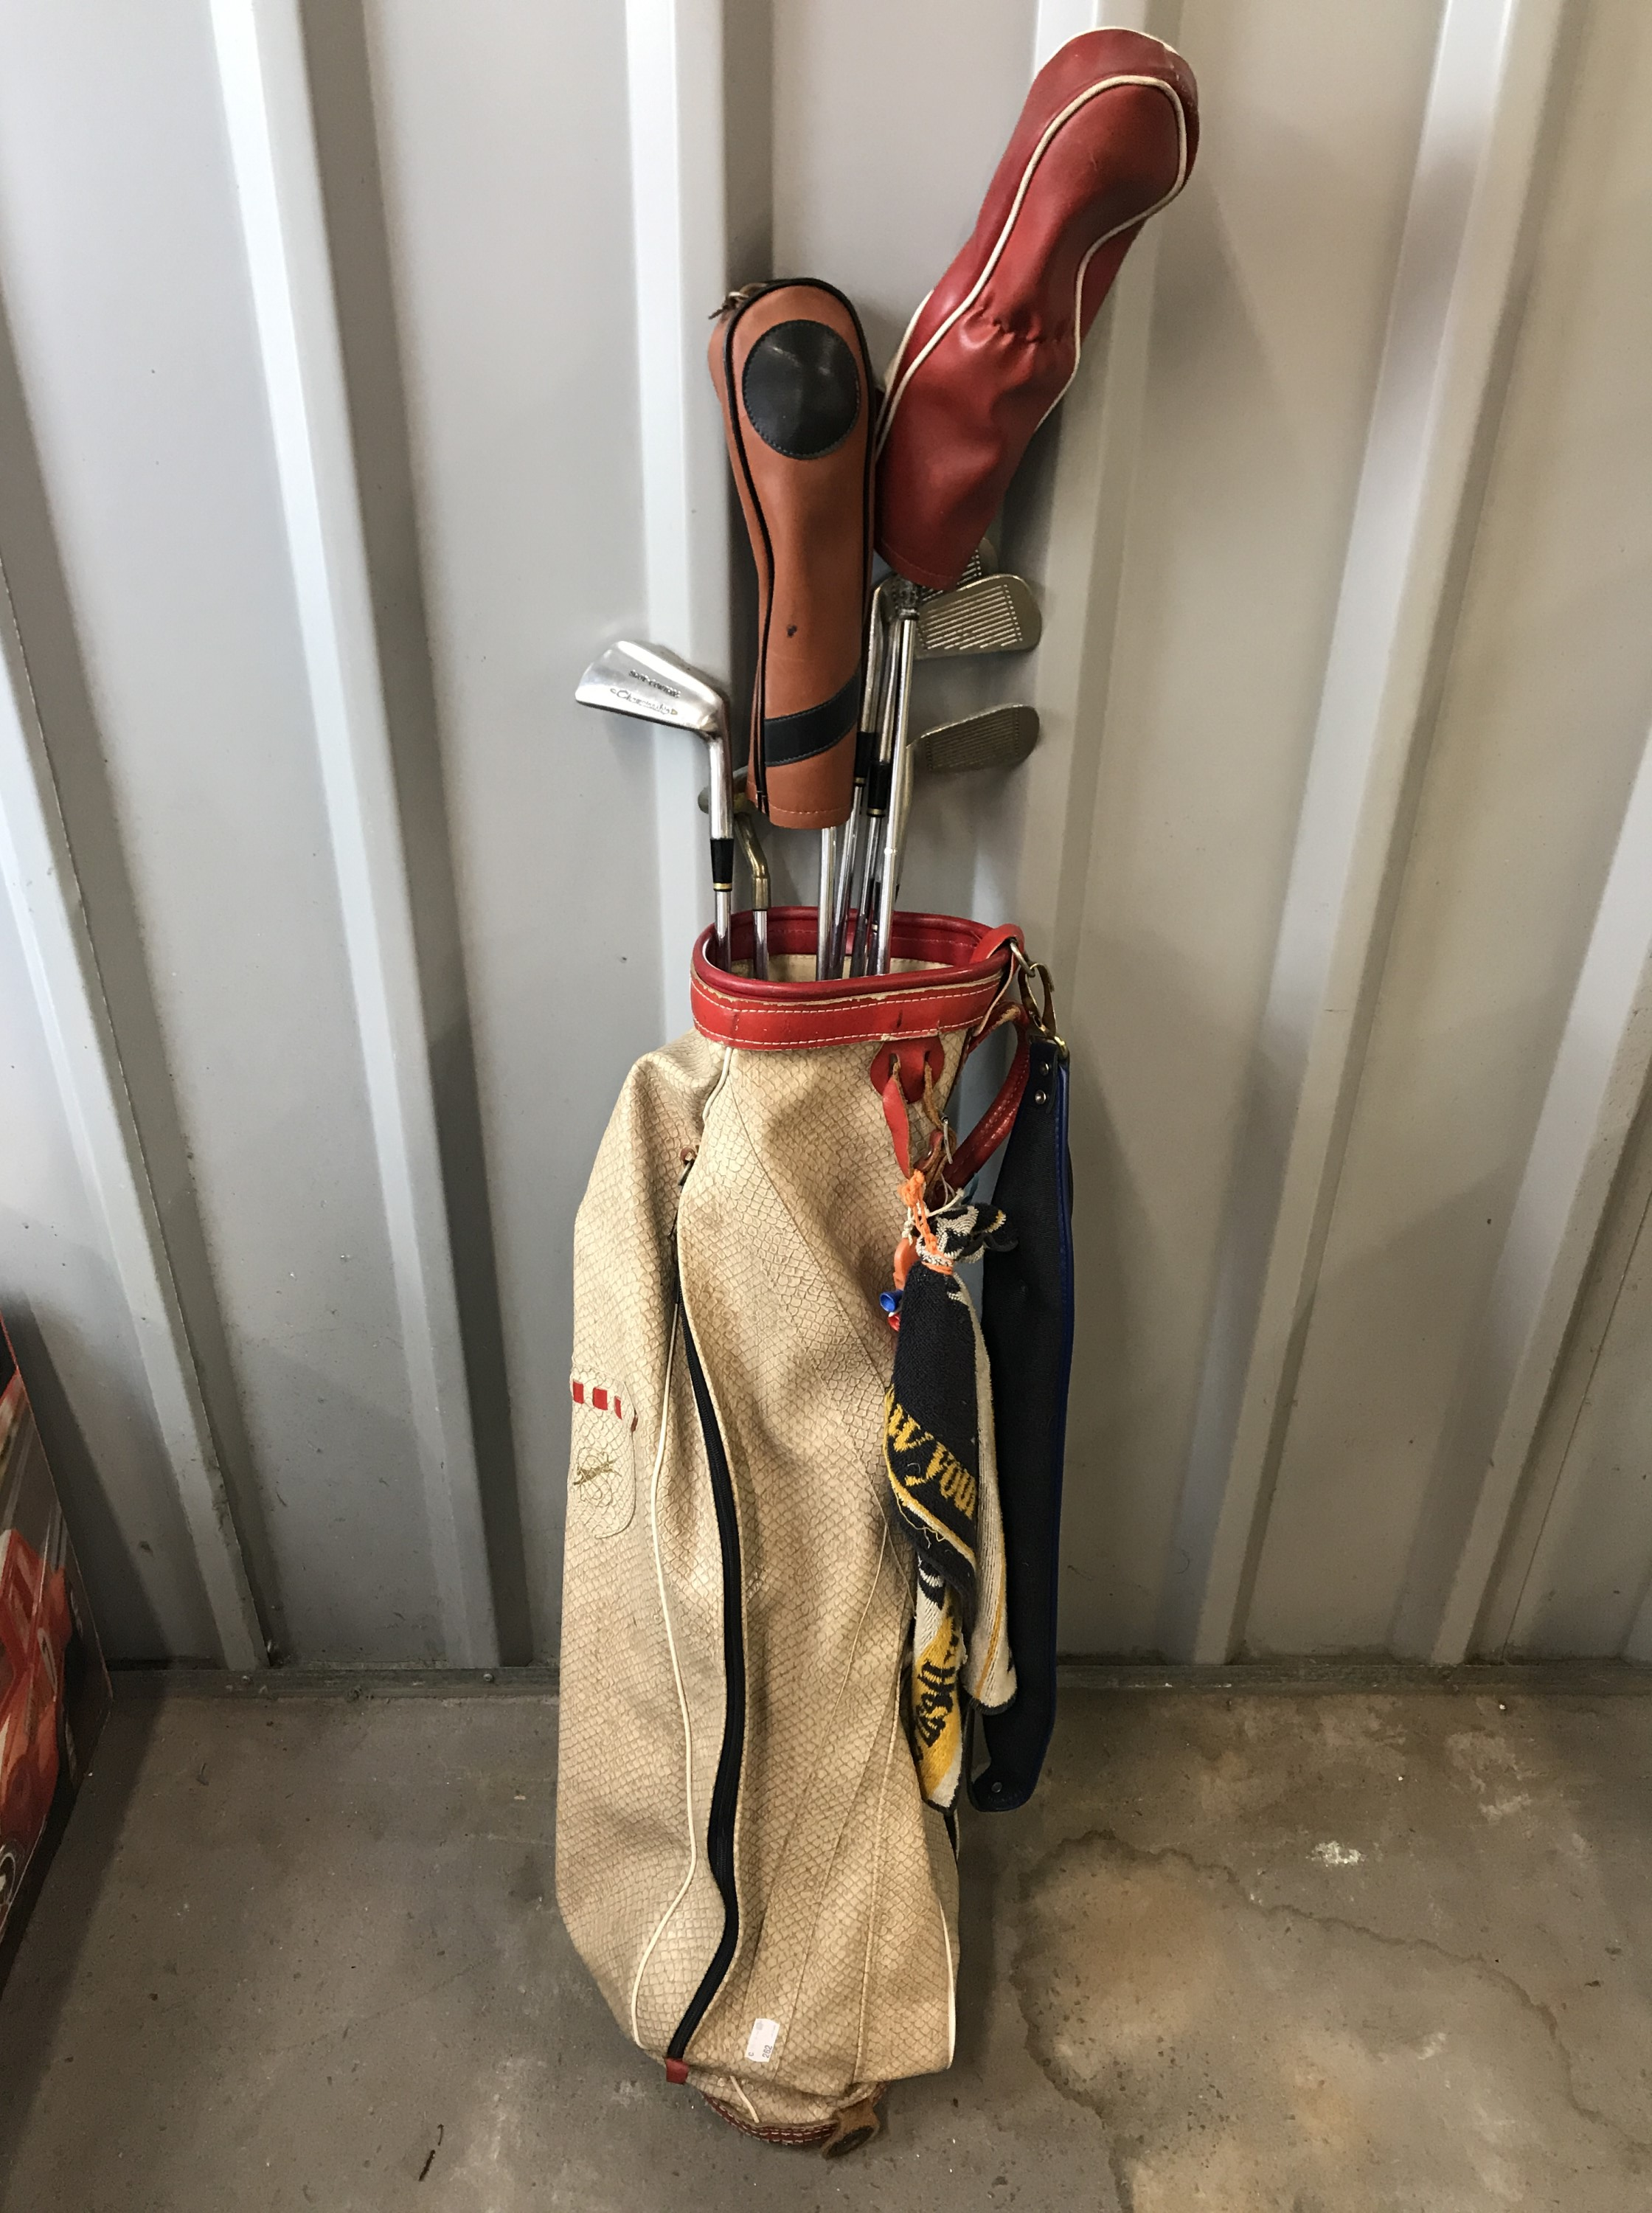 Lot 33 - A vintage golf bag together with Golfco and Championship clubs